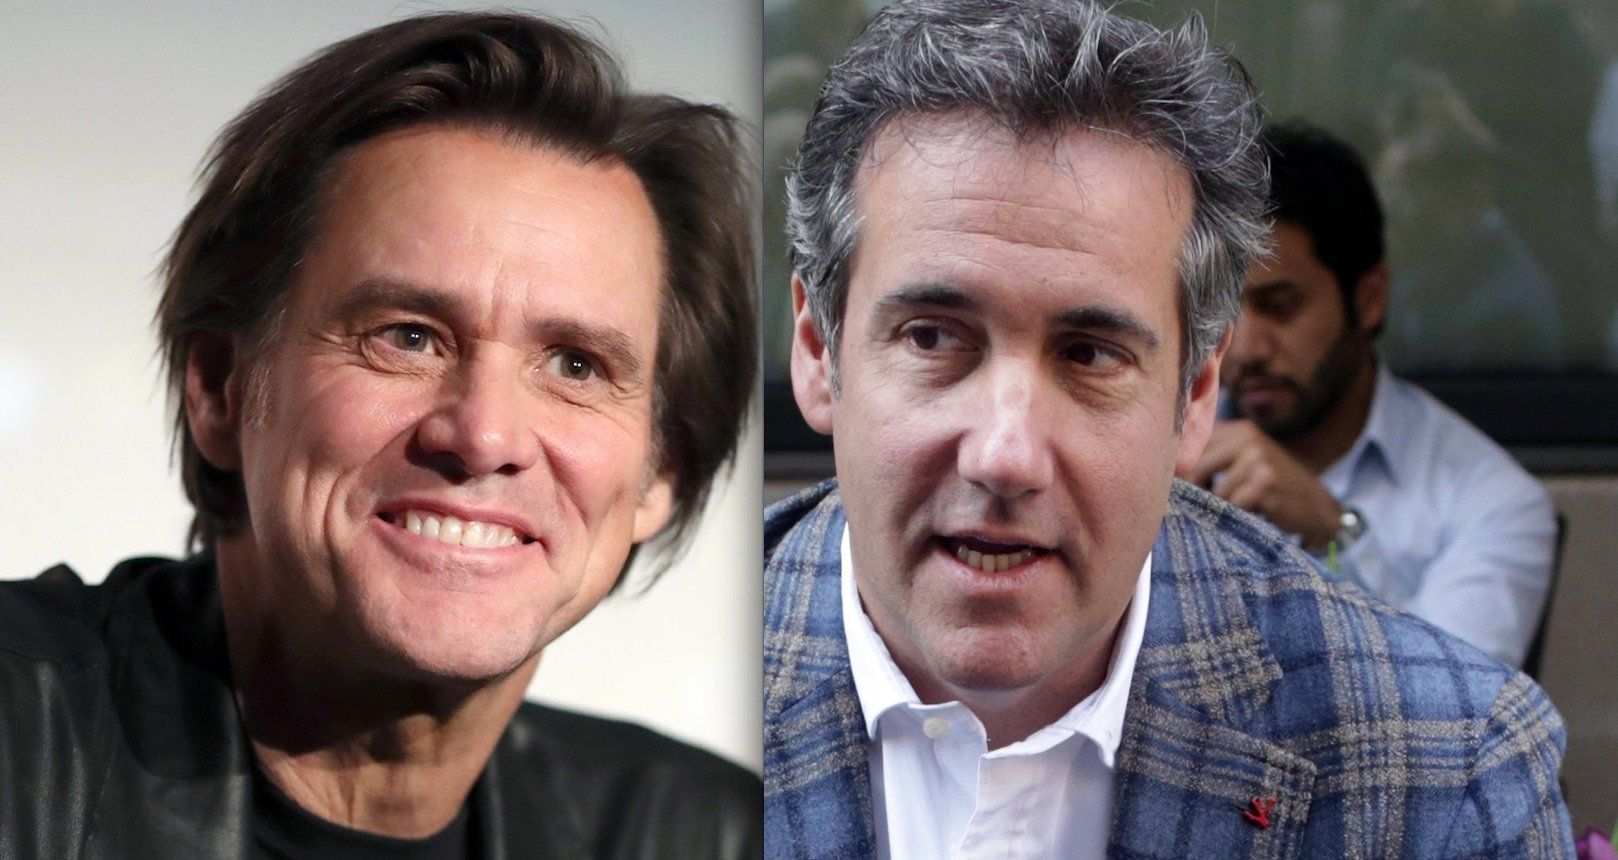 Jim Carrey Paints A 'F**king Disgusting' Picture Of Trump Attorney Michael Cohen